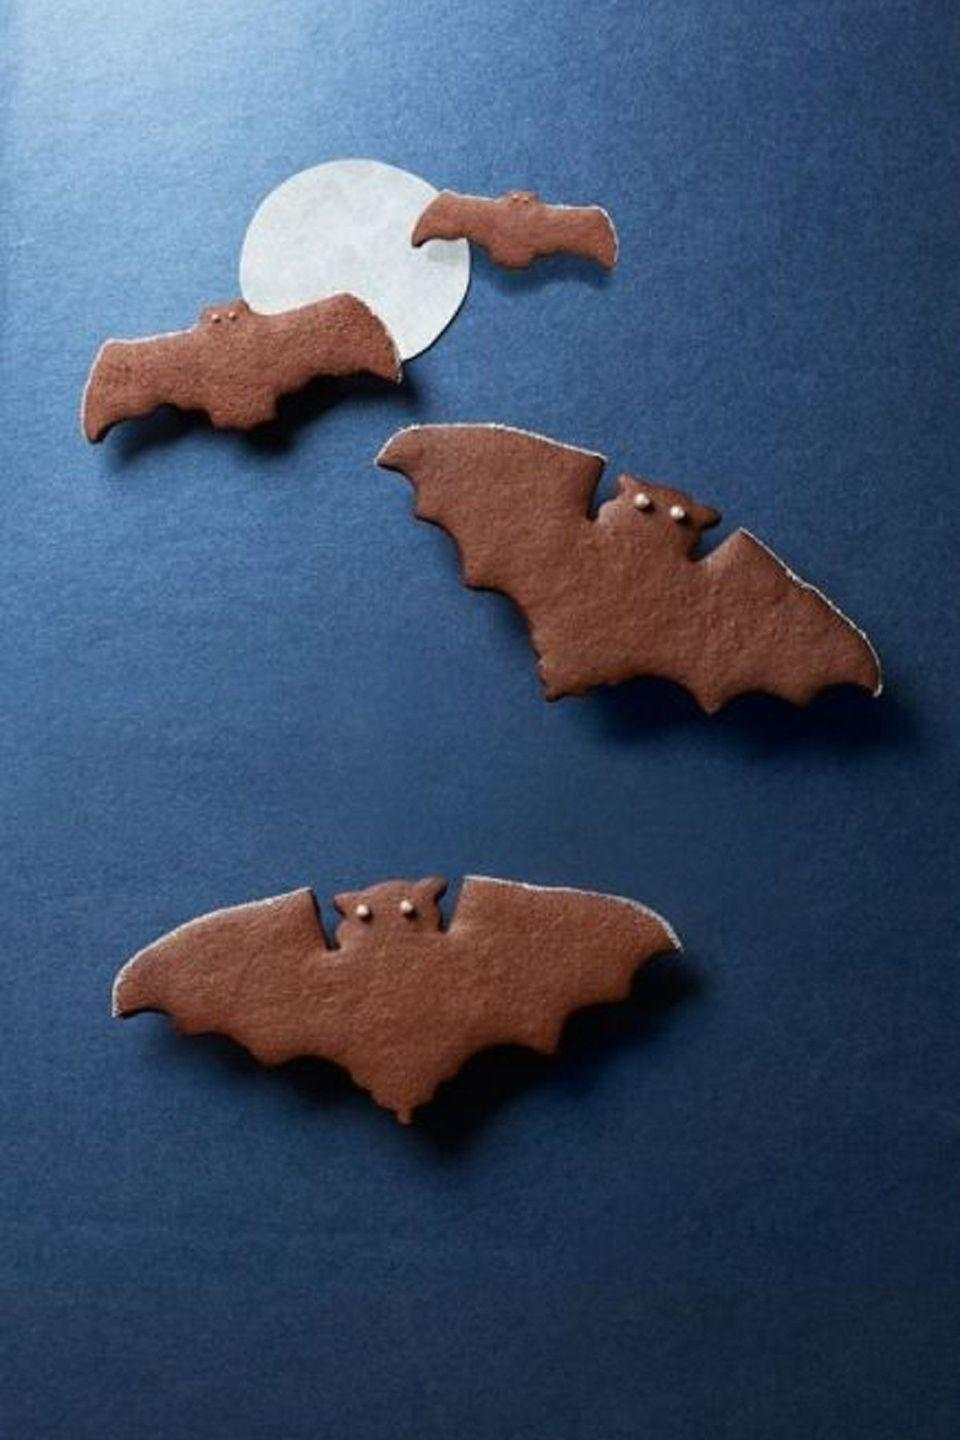 """<p>With a little kick, these chocolate spice bats will take over the night.</p><p><em><strong><a href=""""https://www.womansday.com/food-recipes/food-drinks/recipes/a40295/spiced-chocolate-bat-cookies-recipe-clx1014/"""" rel=""""nofollow noopener"""" target=""""_blank"""" data-ylk=""""slk:Get the Spiced Chocolate Bat Cookies recipe."""" class=""""link rapid-noclick-resp"""">Get the Spiced Chocolate Bat Cookies recipe.</a></strong></em></p>"""